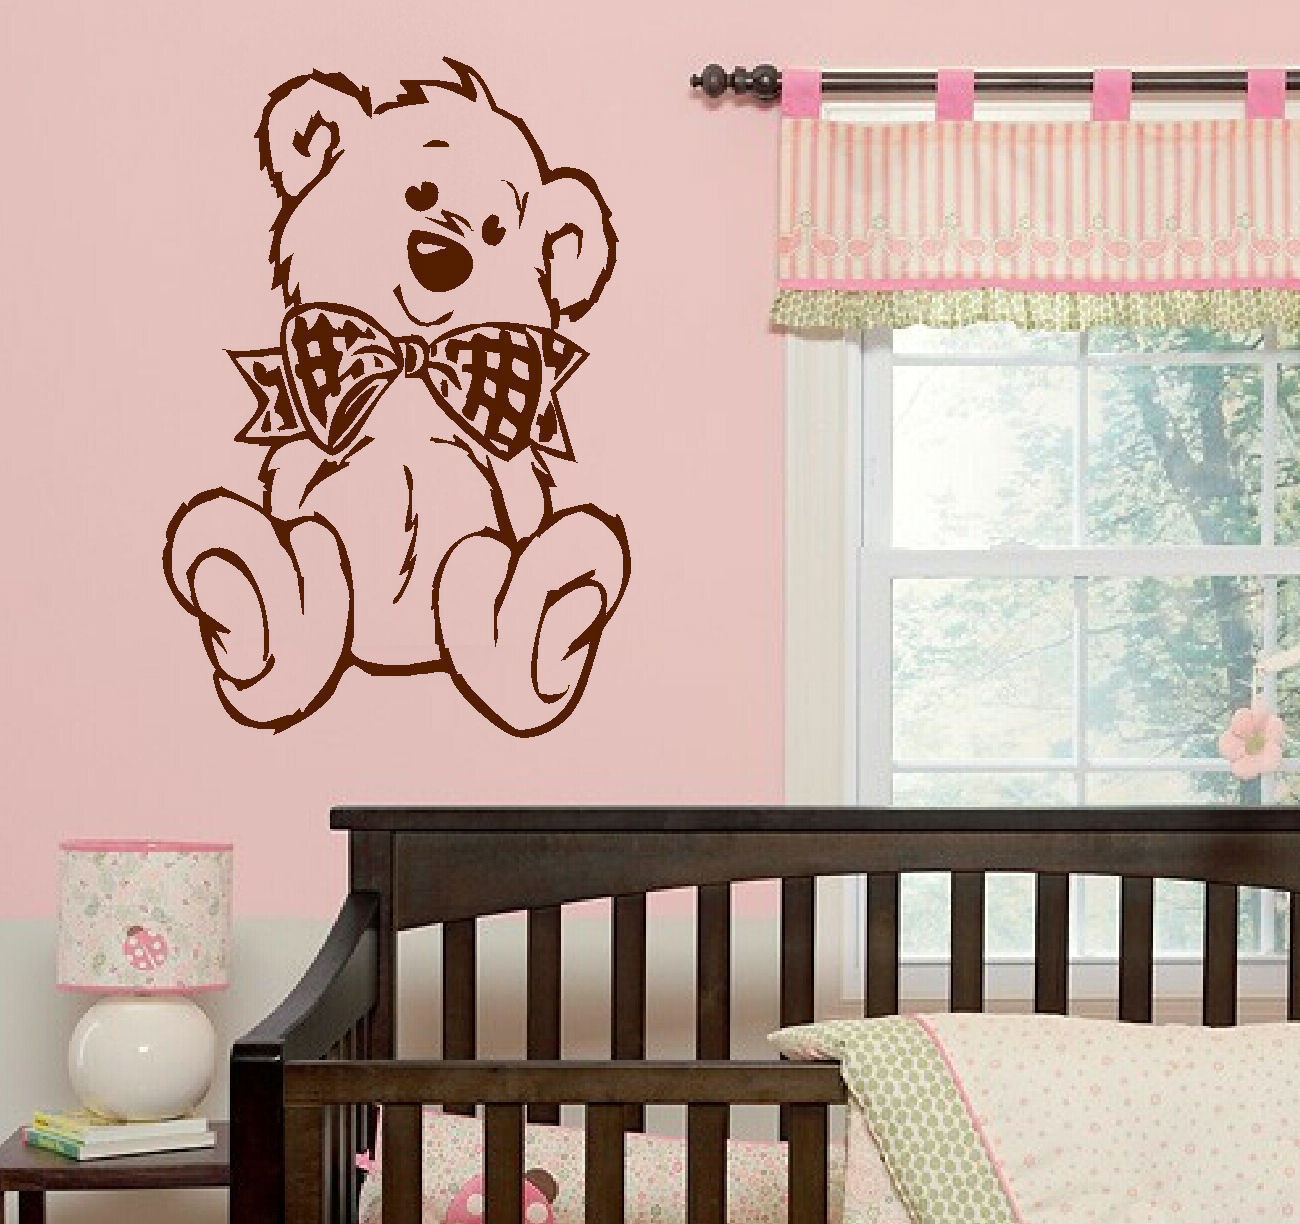 D315 Large Nursery Baby Teddy Bear Wall Art Sticker Transfer Decal 100 Charity In Stickers From Home Garden On Aliexpress Alibaba Group